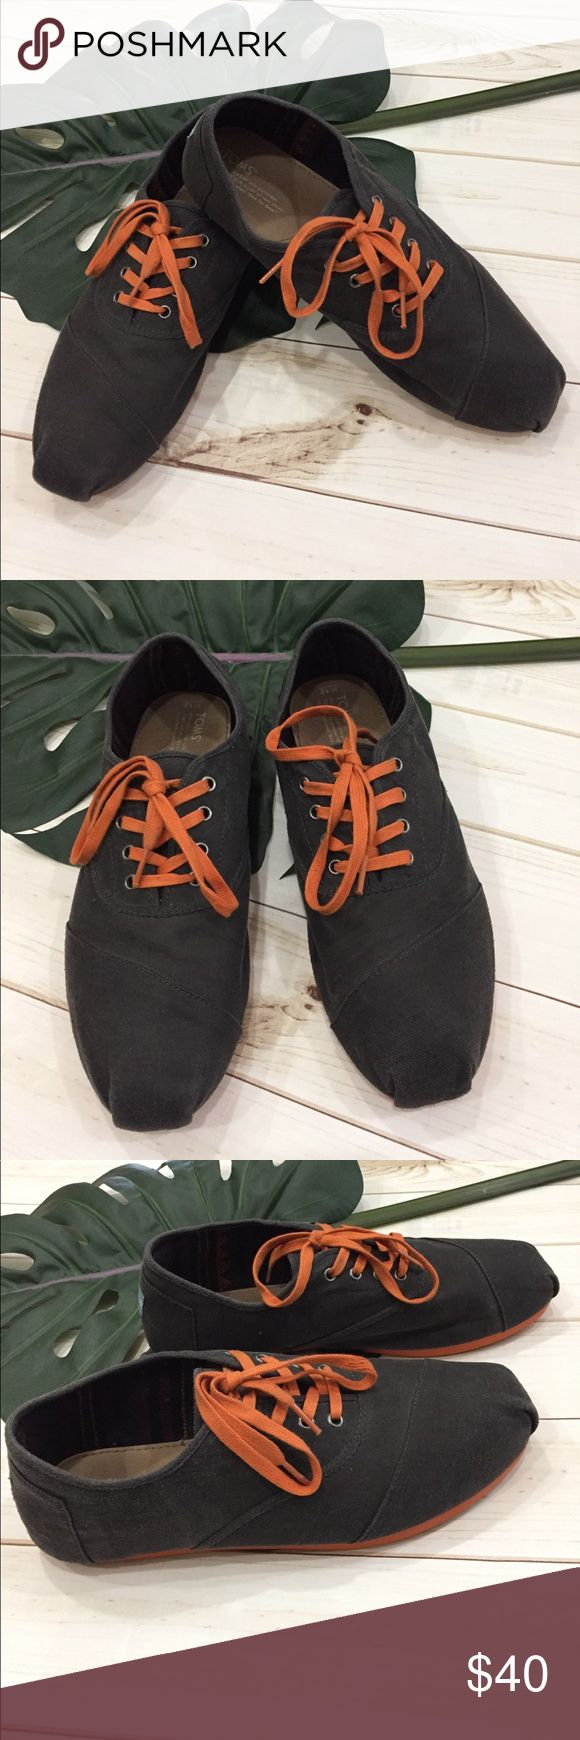 🔥Mens TOMS cordones lace up slip on shoes 🔥For the BOLD!! Mens TOMS cordones lace up slip on shoes. These are hard to find super comfy mens TOMs charcoal and orange comfortable all day shoes. Preloved in excellent condition. Only wear is seen on soles. True to size. Toms Shoes Loafers  Slip-Ons